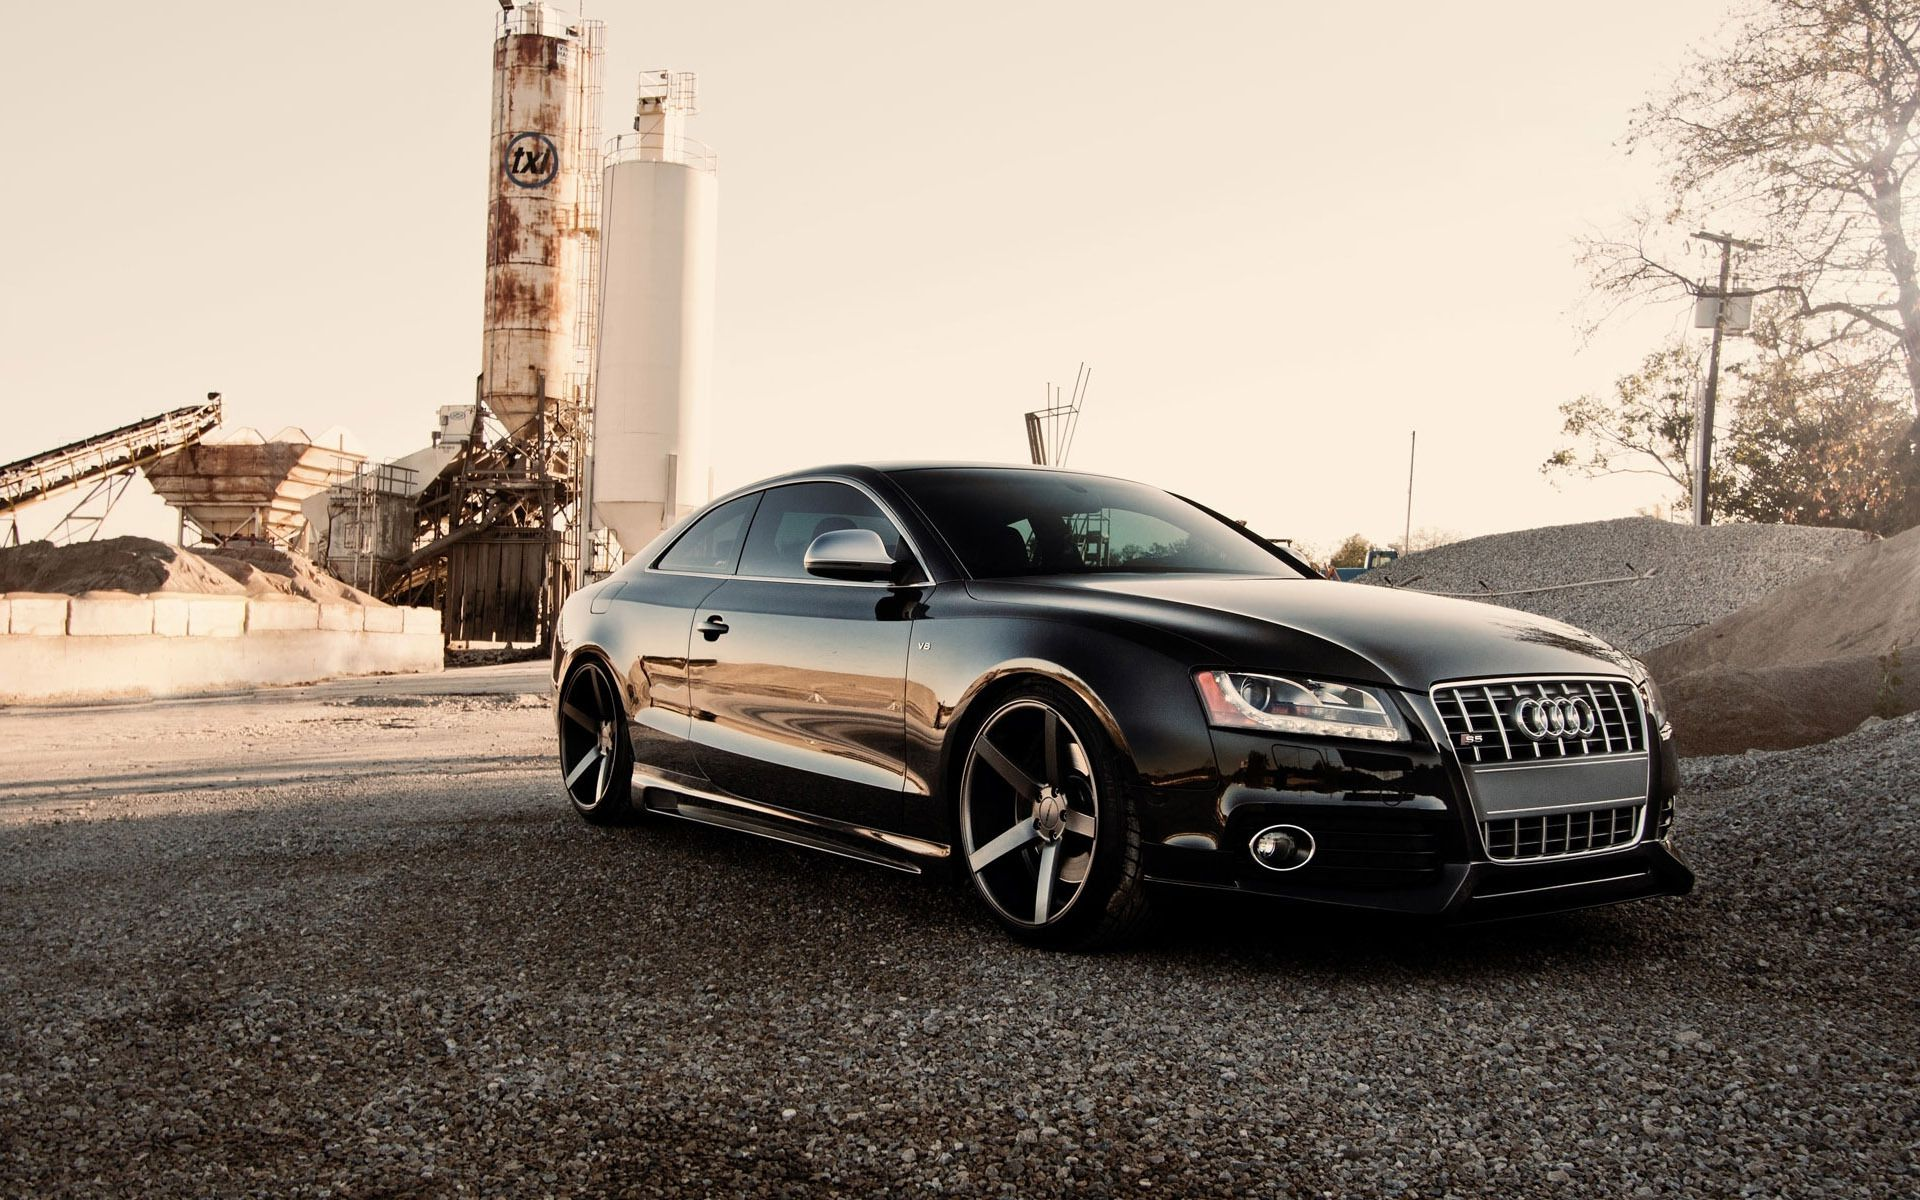 Audi S5 Wallpaper Audi Custom Pinterest Audi Audi S5 And Audi